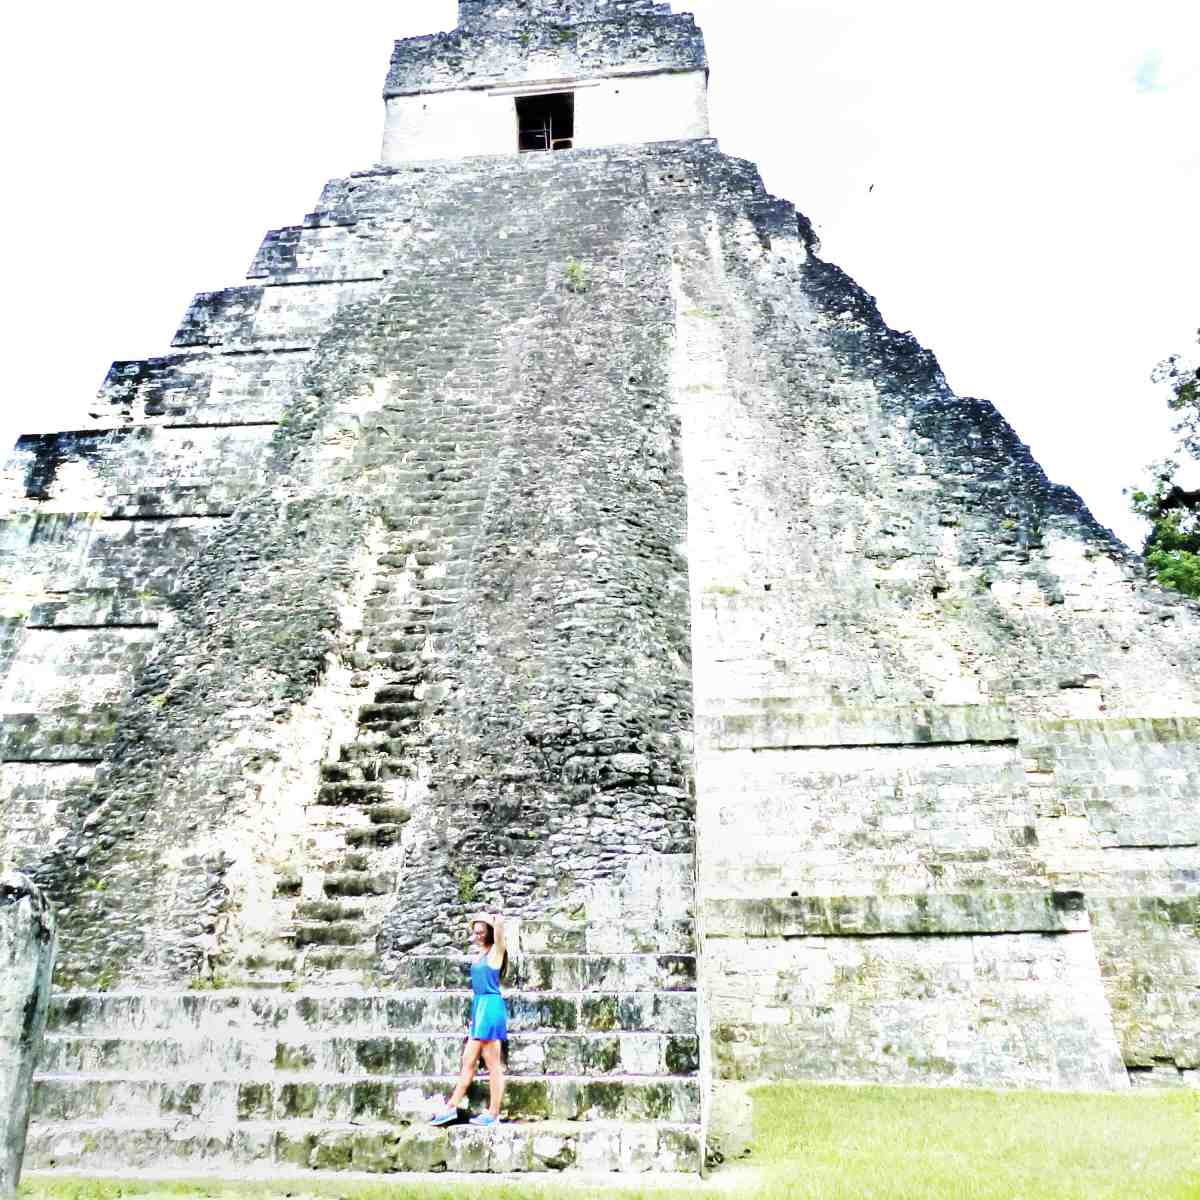 walking across the ruins of Tikal